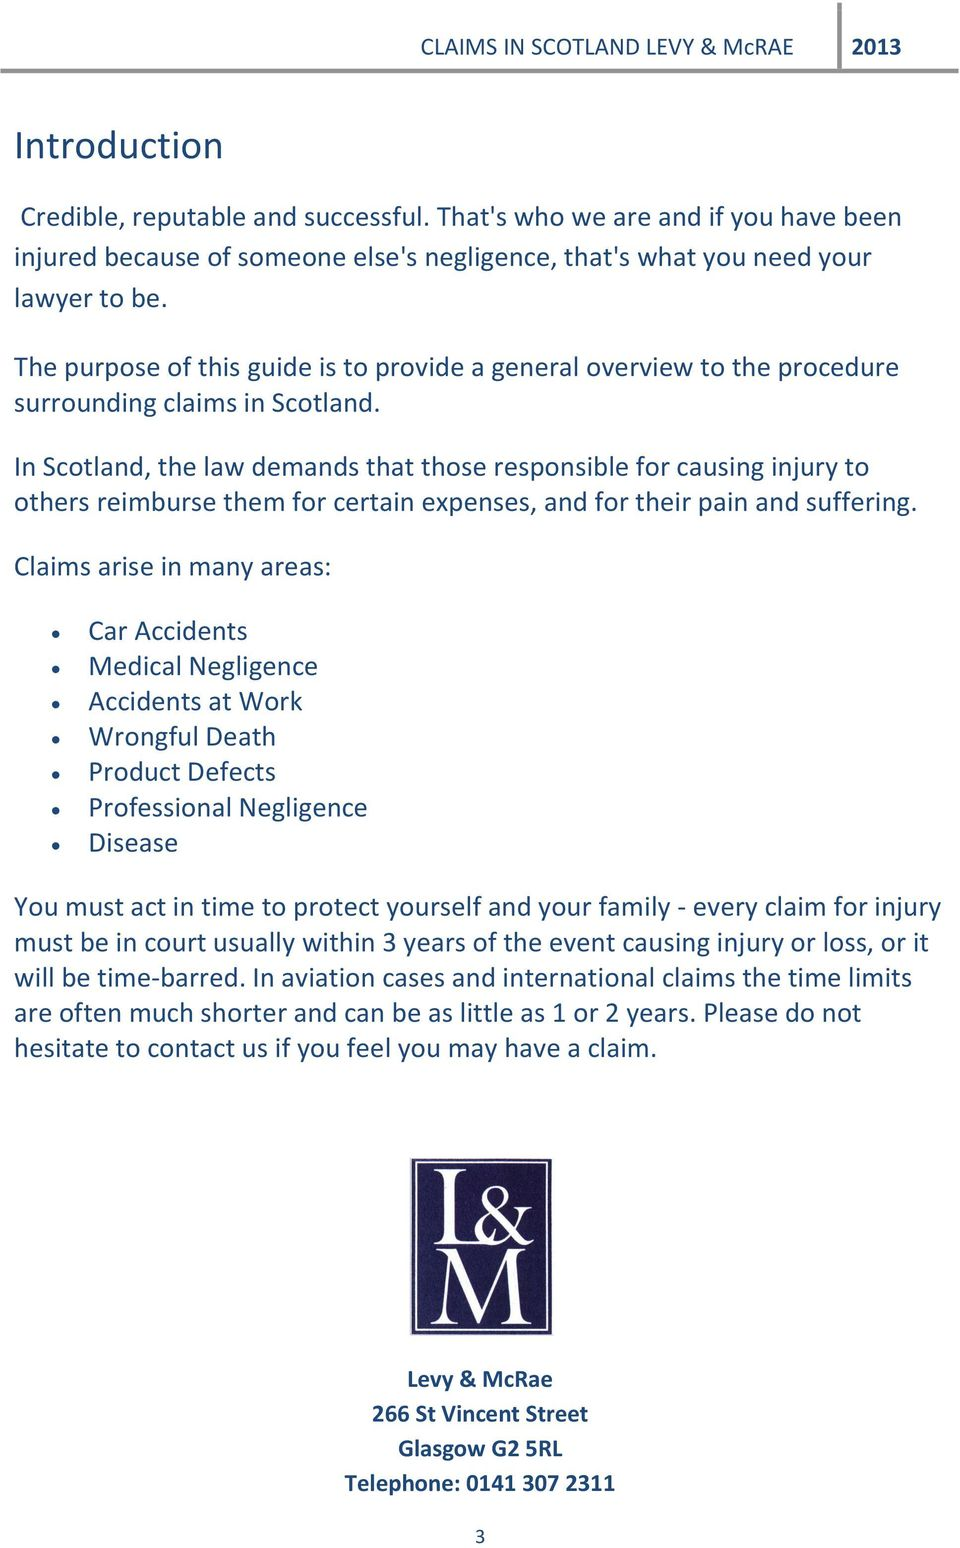 In Scotland, the law demands that those responsible for causing injury to others reimburse them for certain expenses, and for their pain and suffering.